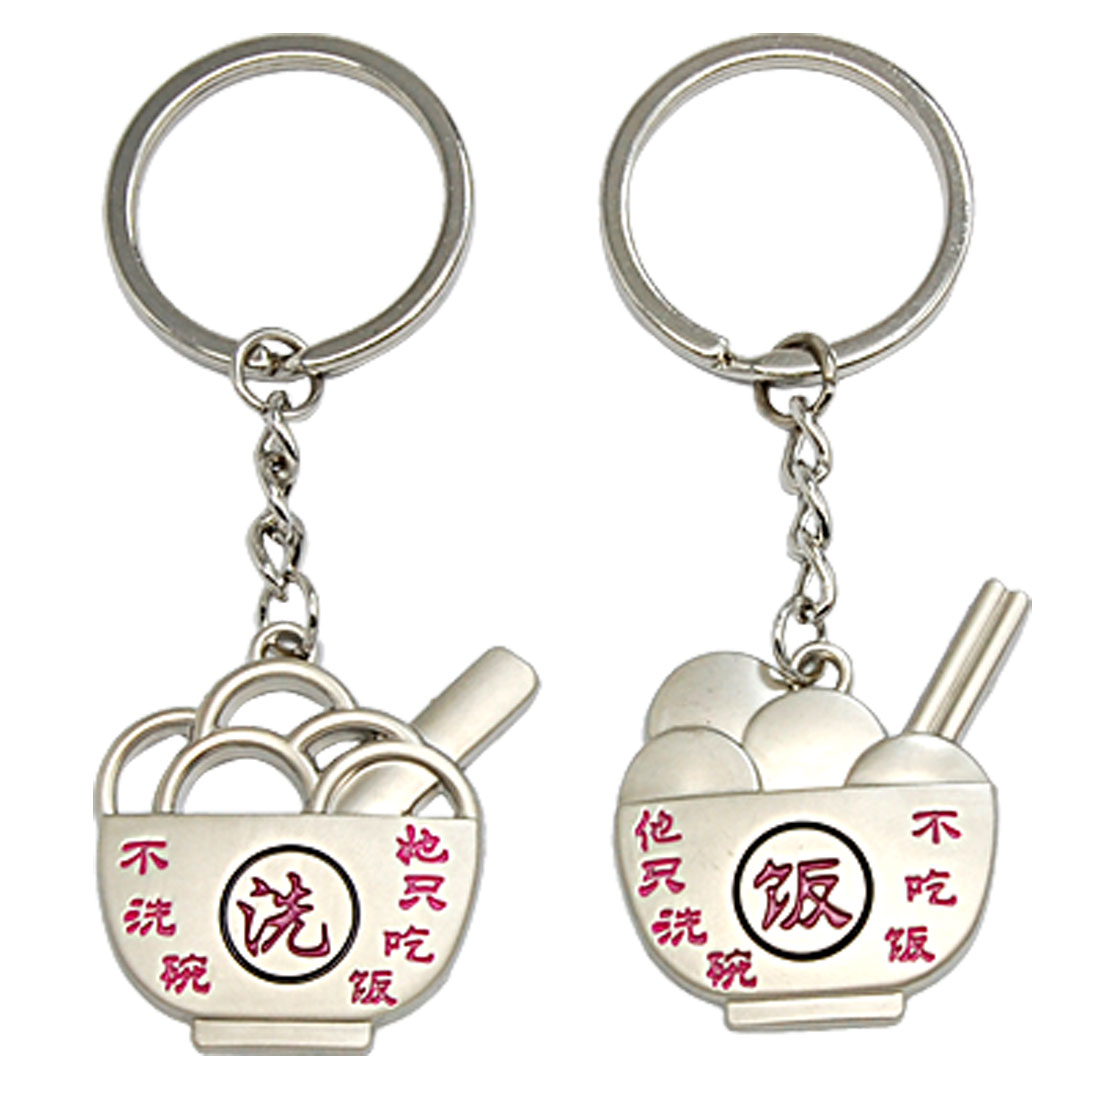 Cool & Funny Pair Keychain Alloy Keyring Lovers' Present